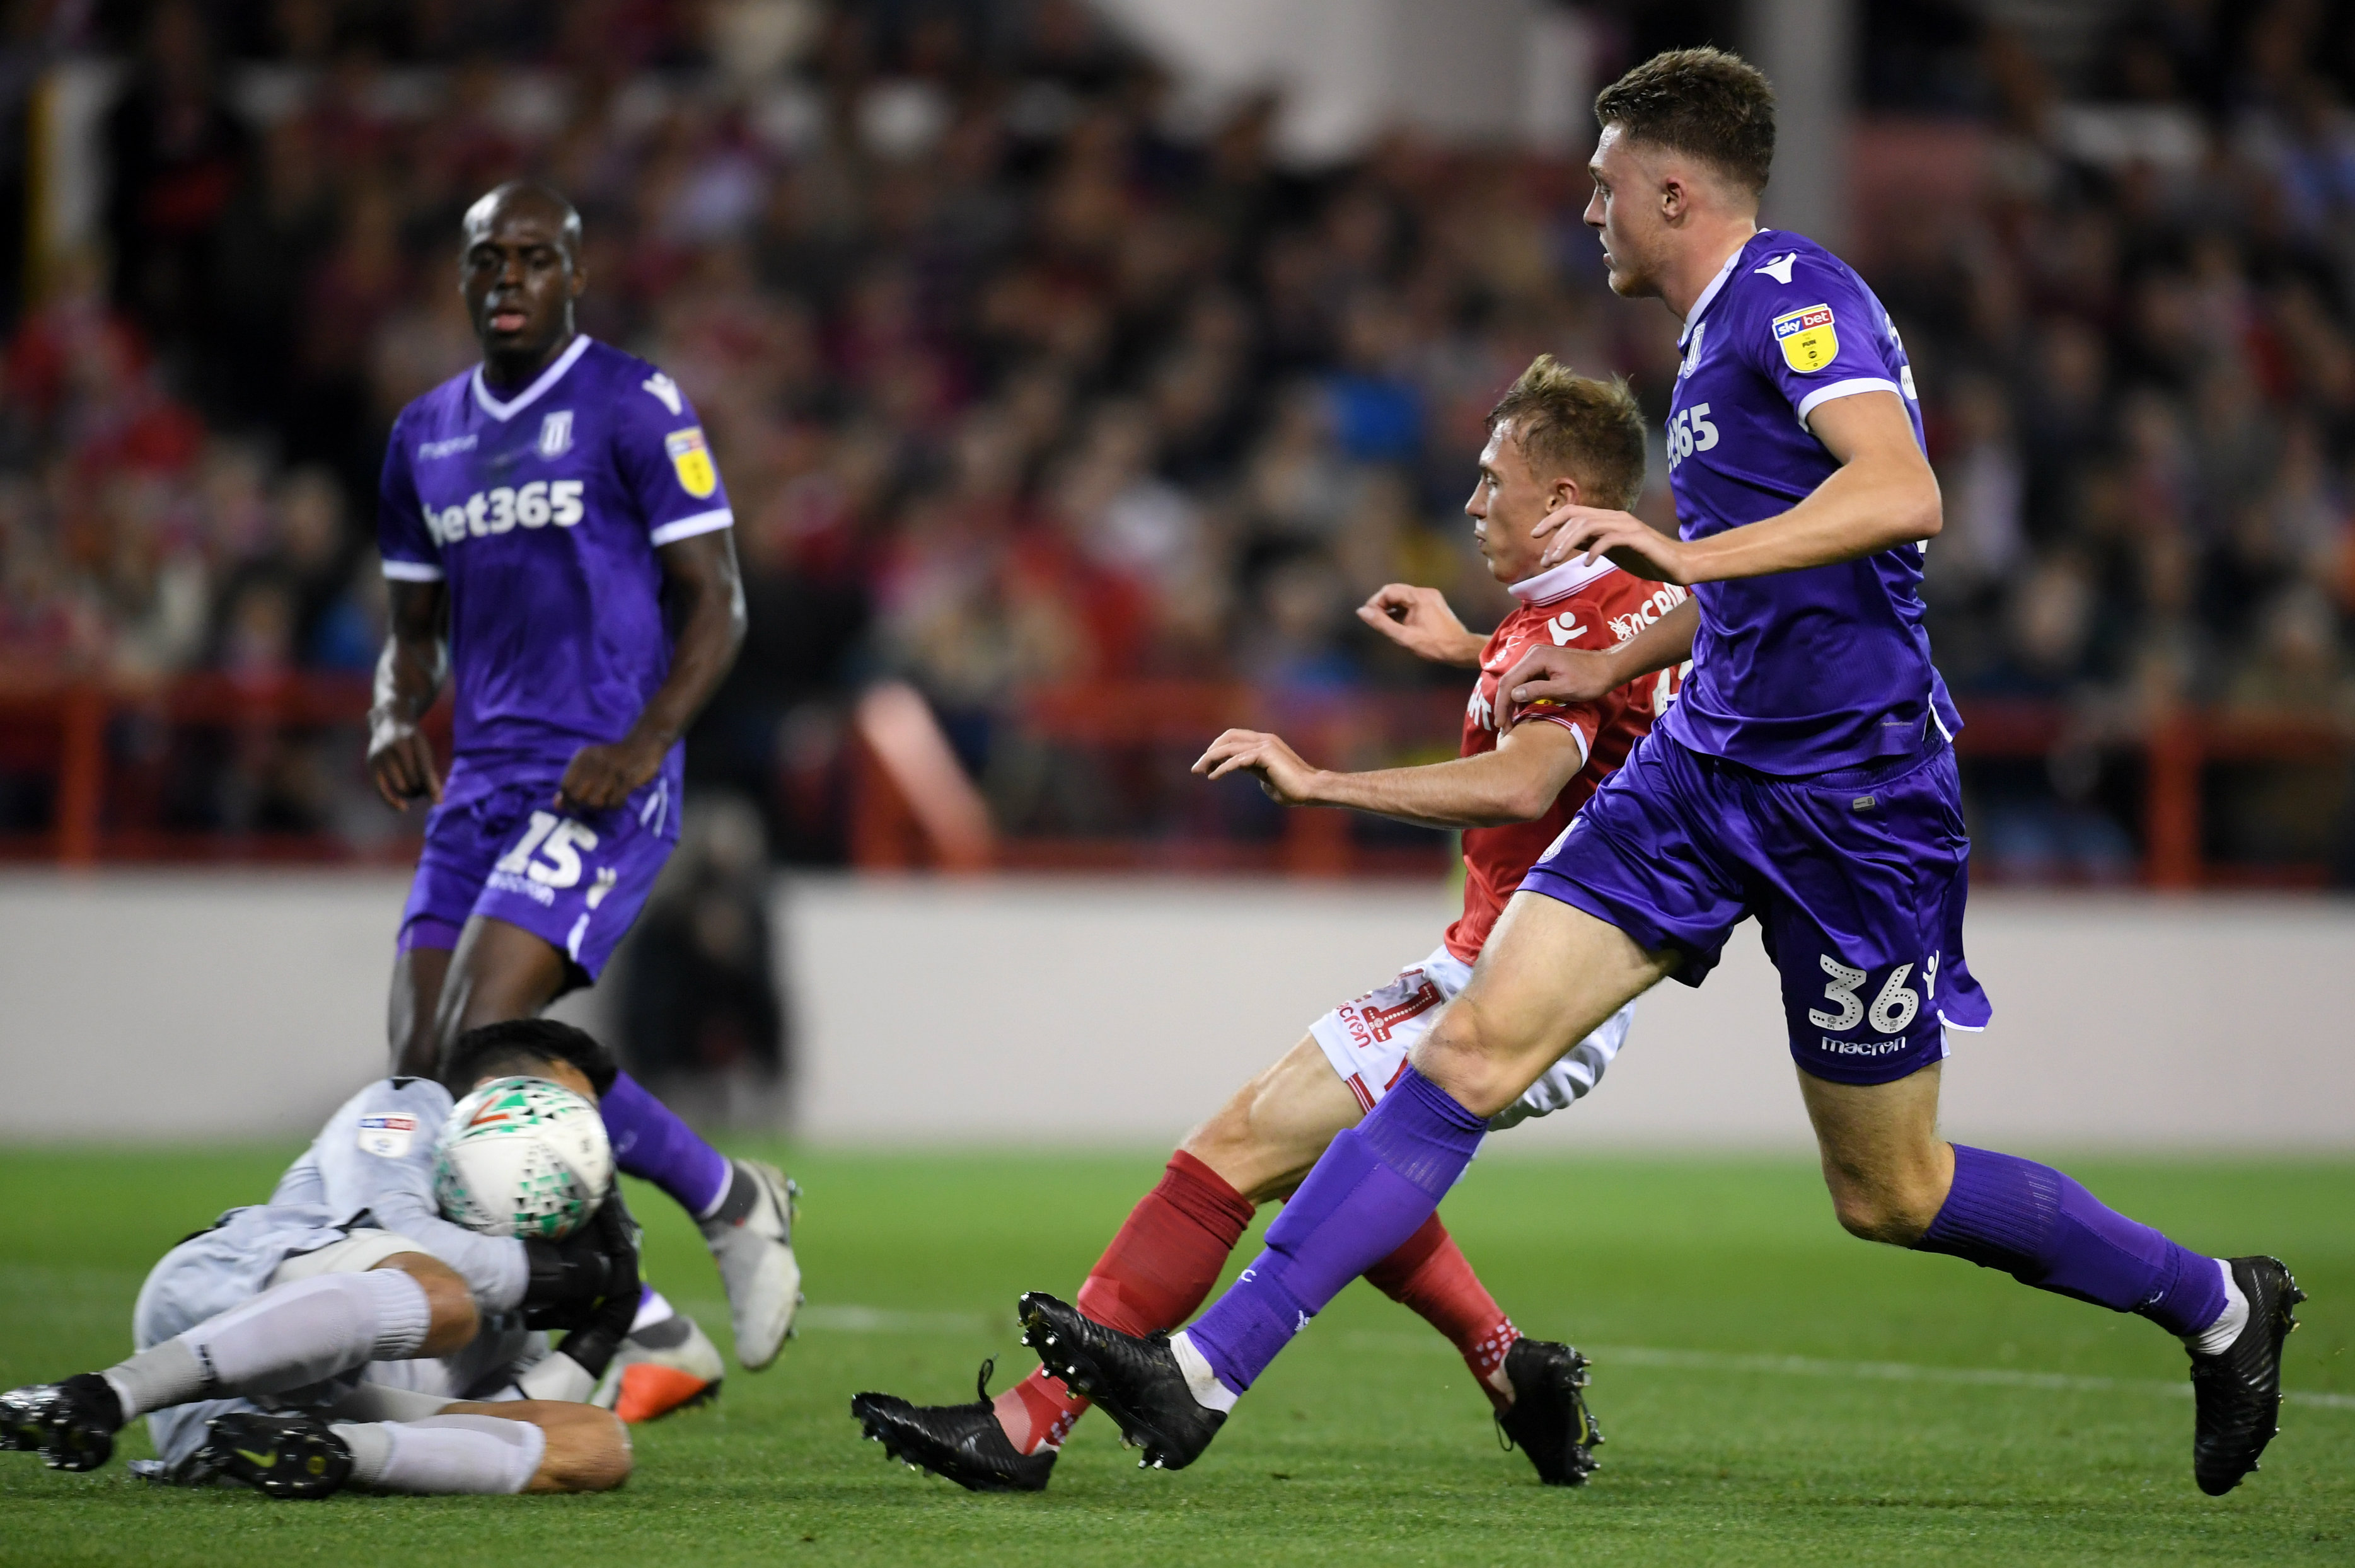 Adam Federici makes a save as Harry Souttar puts pressure on a Nottingham Forest attacker in the League Cup